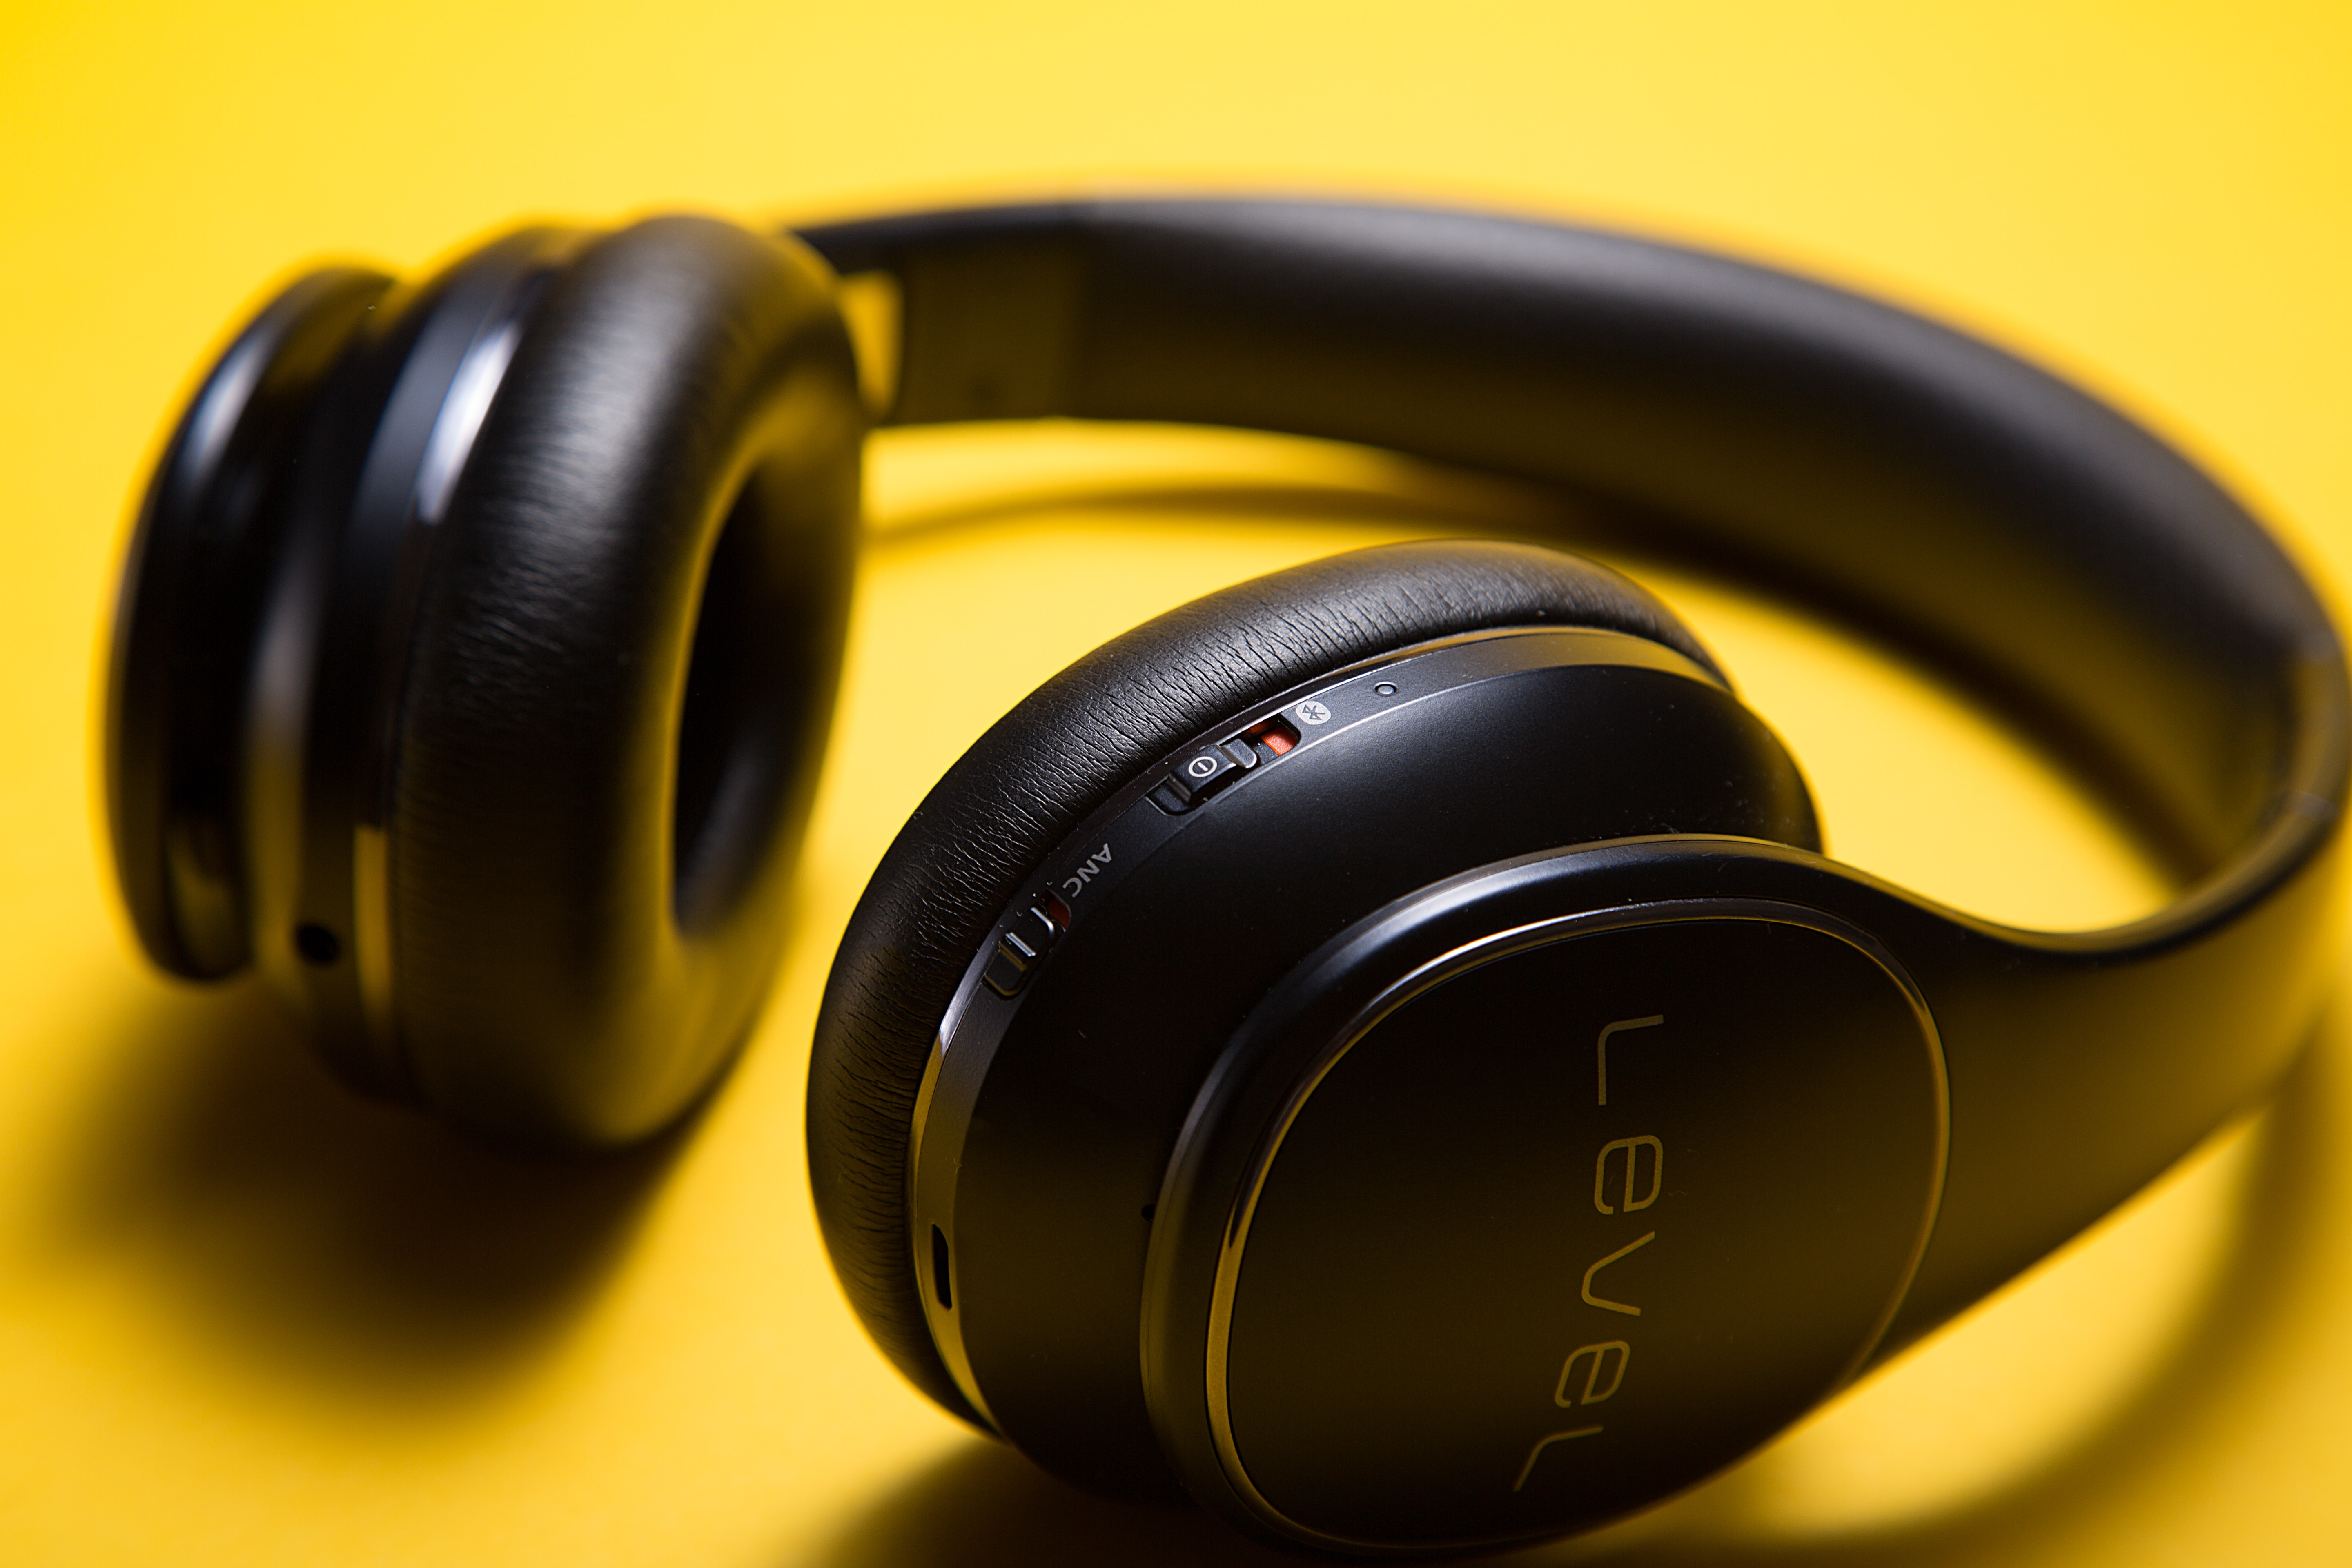 black Level wireless headphones on yellow surface